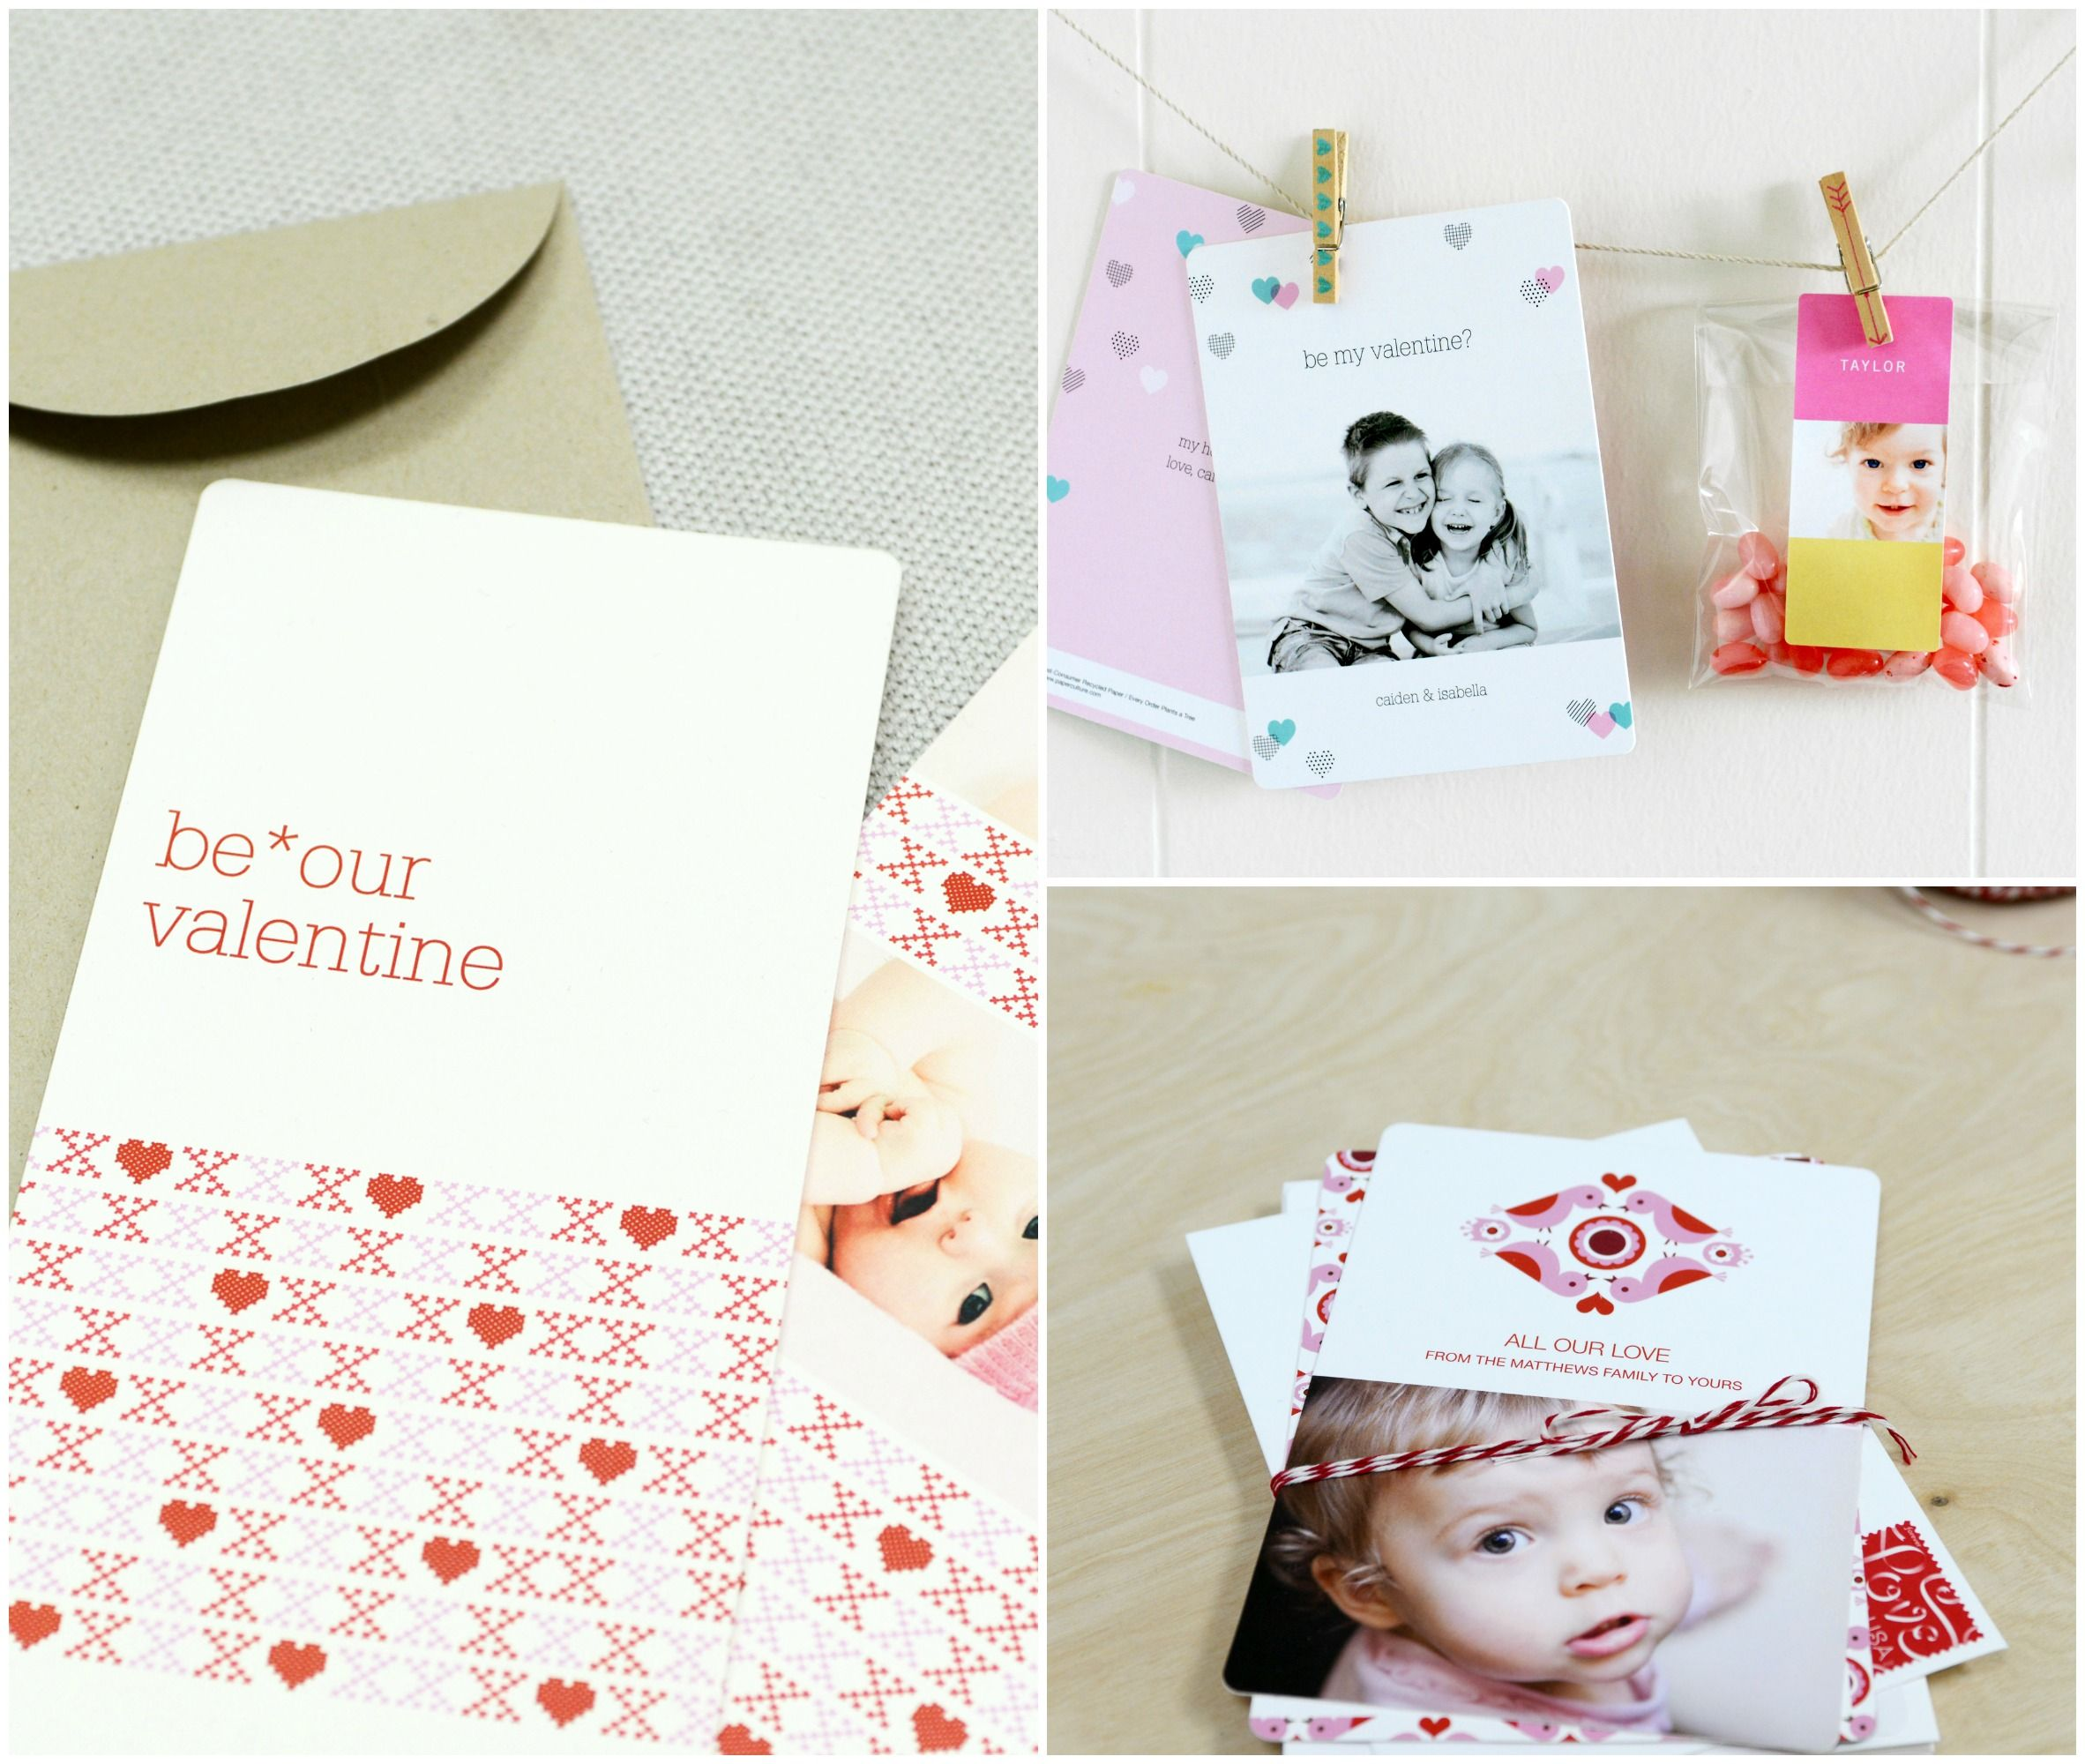 Win it! $150 Gift Voucher to Paper Culture